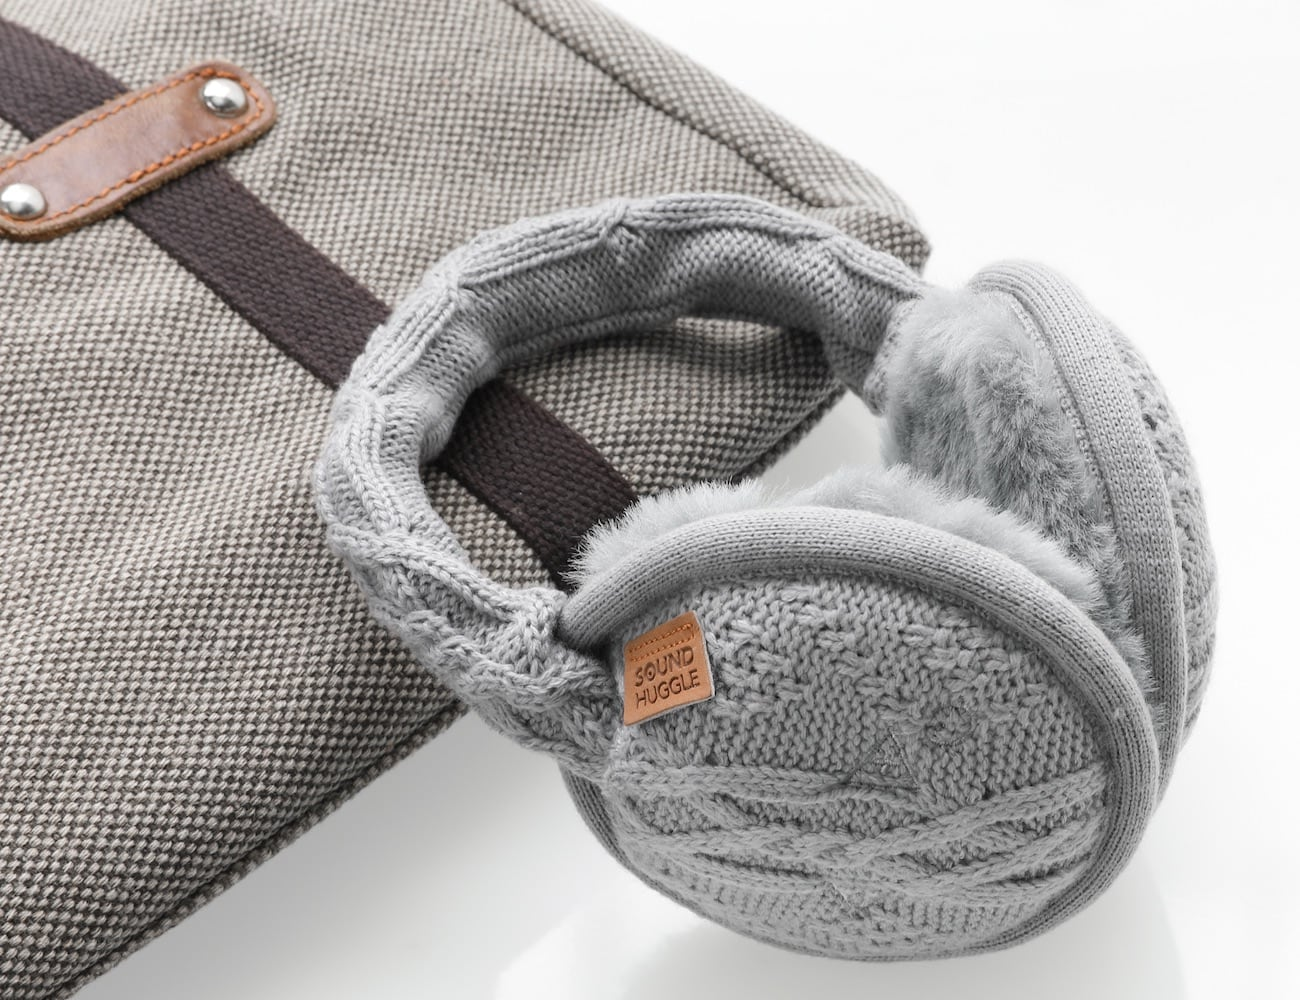 Sound Huggle Wireless Headphone Earmuffs